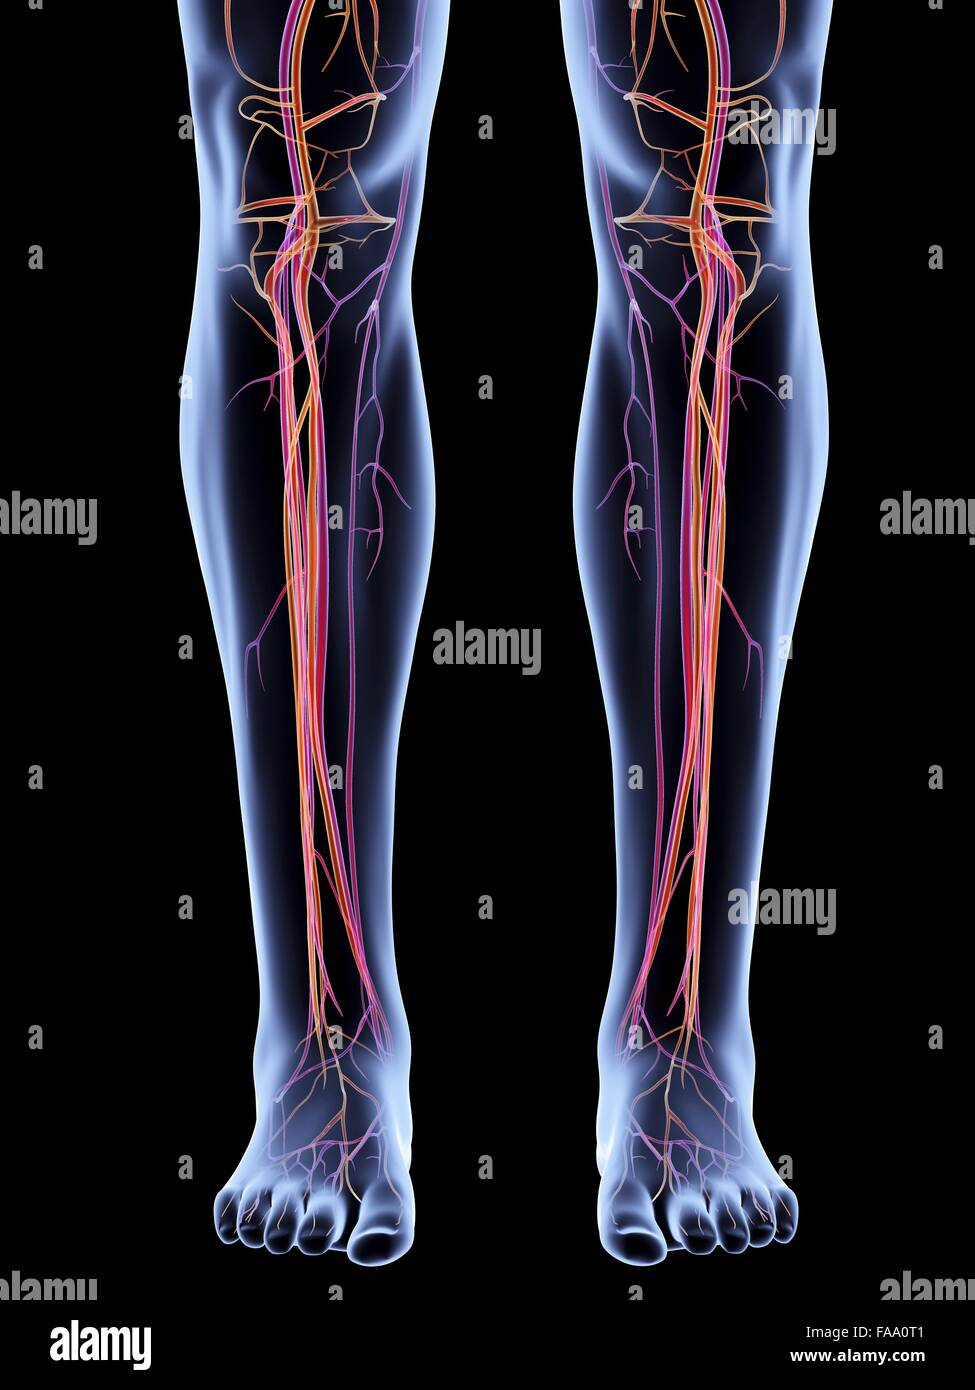 Veins Arteries Leg Stock Photos Veins Arteries Leg Stock Images